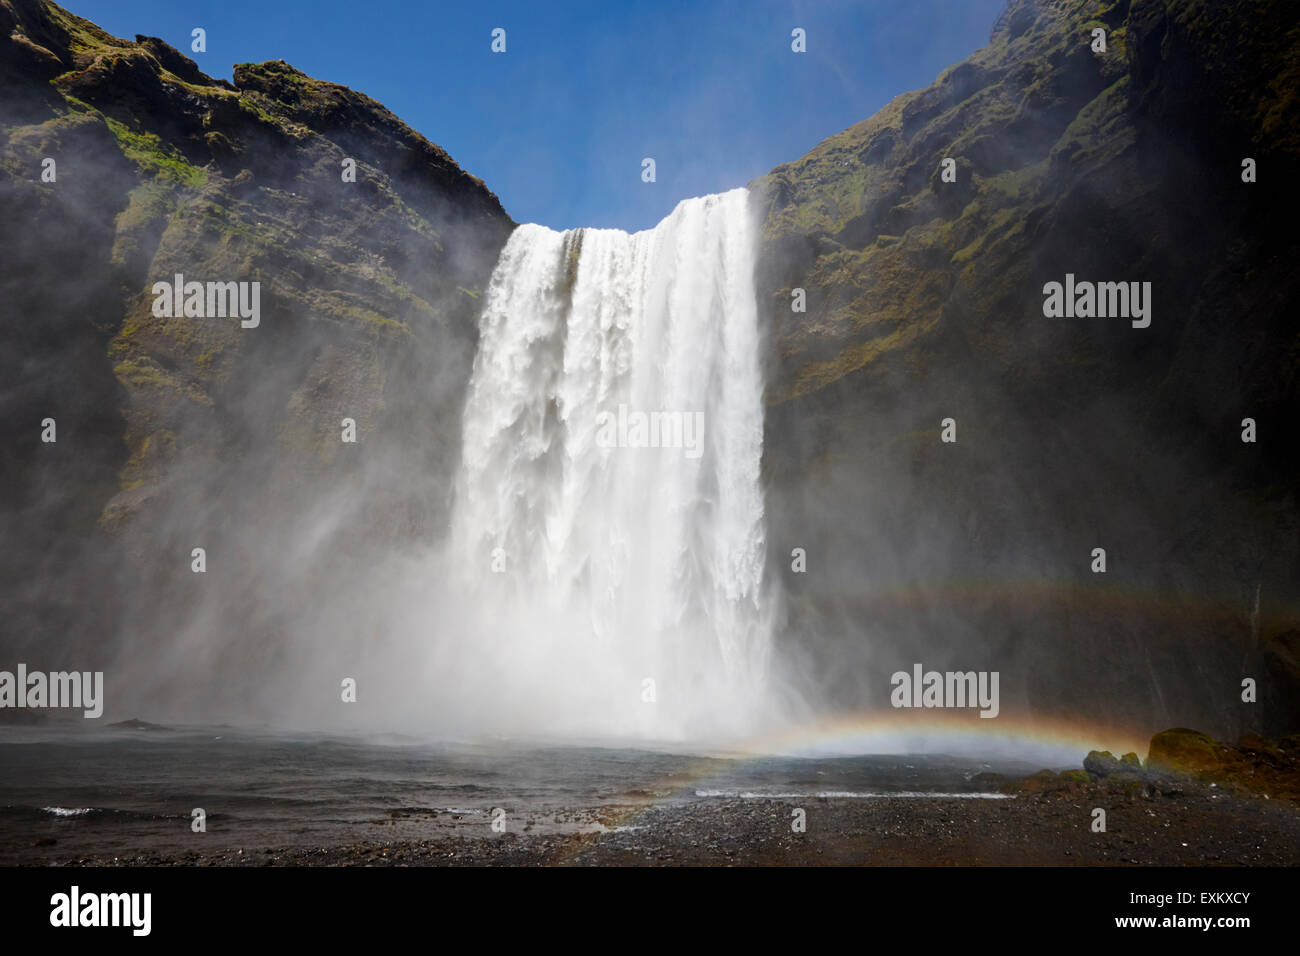 double rainbow at skogafoss waterfall in iceland - Stock Image